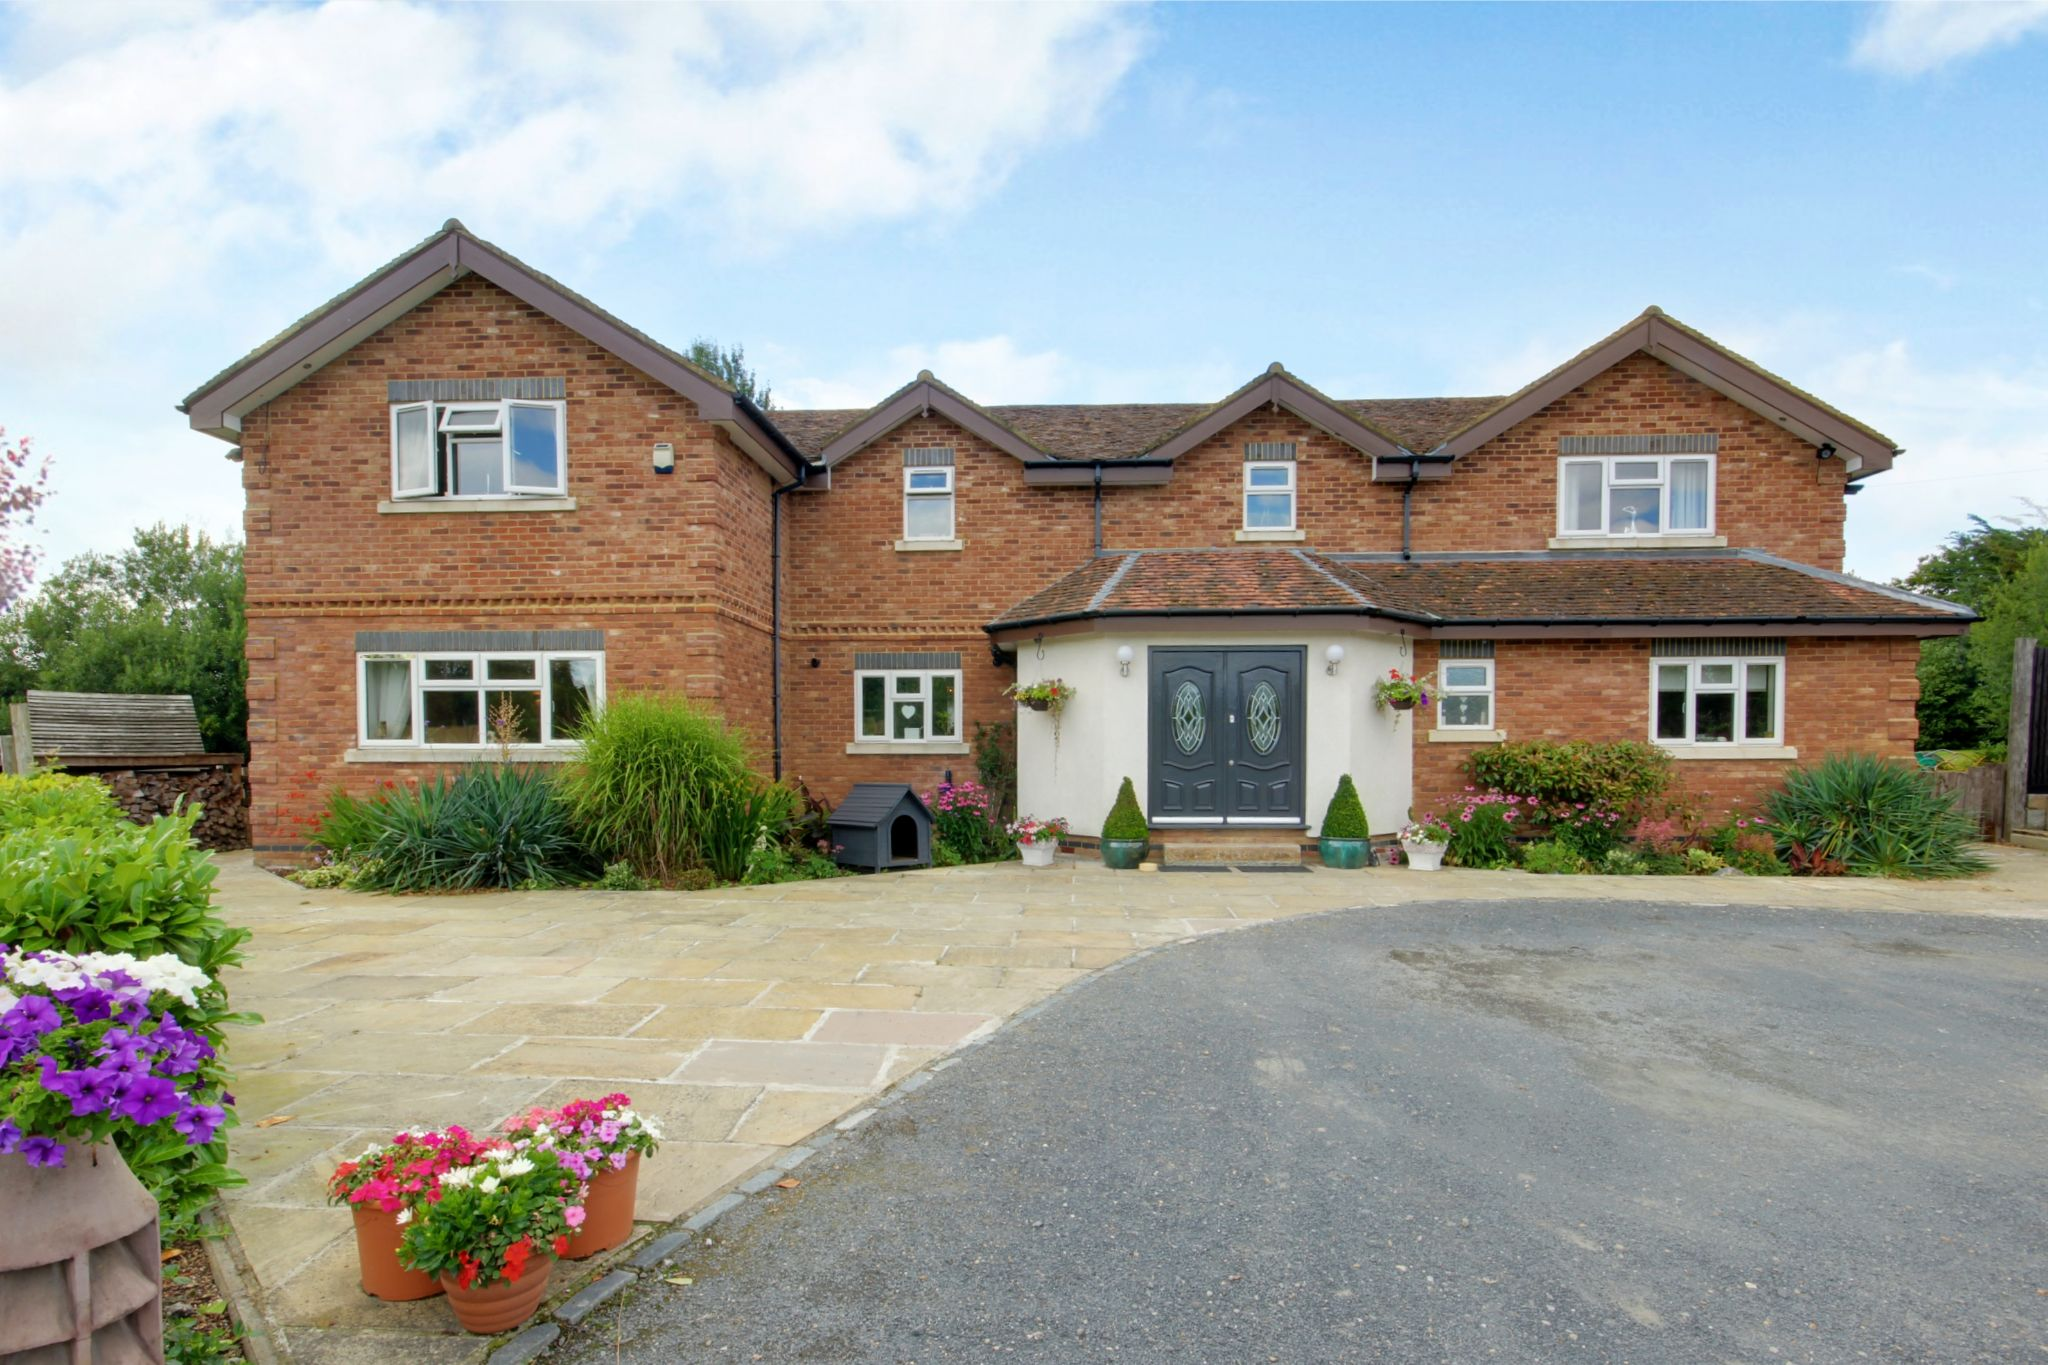 5 bedroom detached house SSTC in North Mymms - Photograph 2